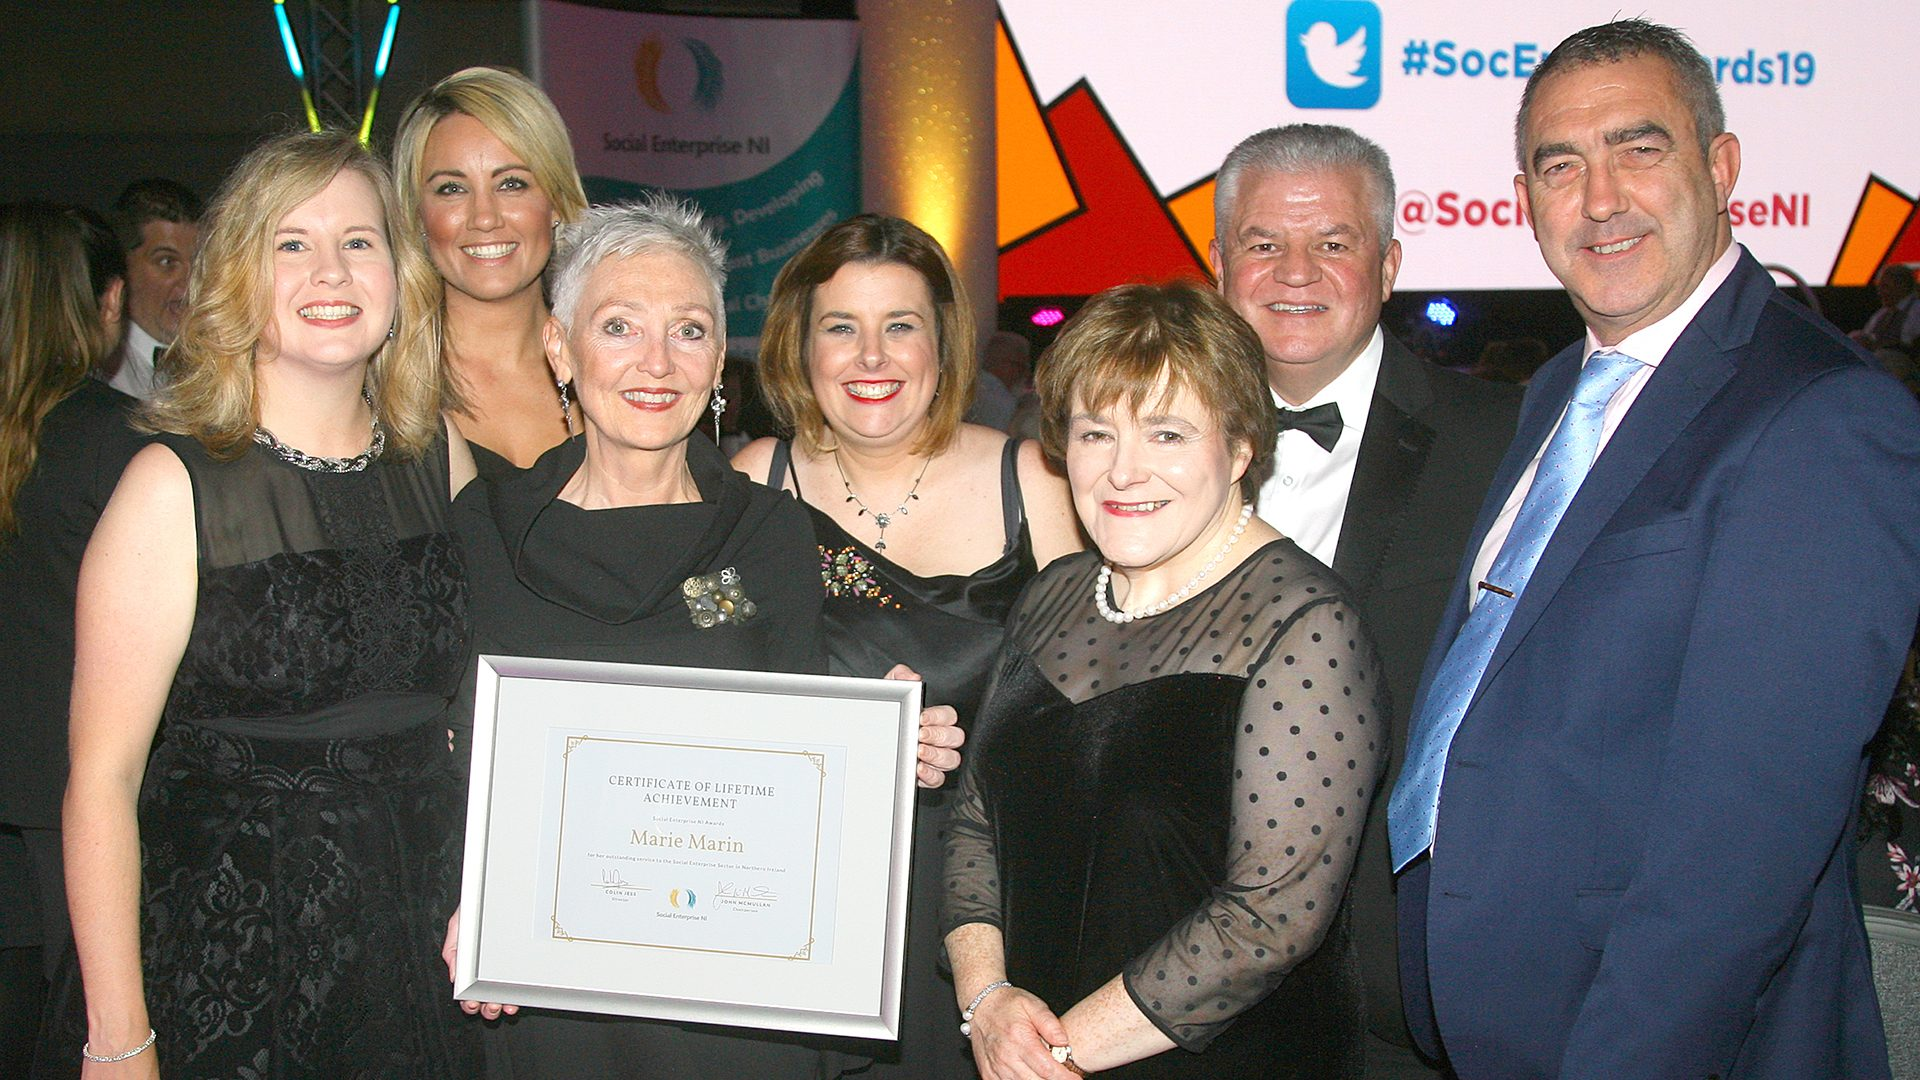 Employers For Childcare picks up top Awards at annual celebration of Social Enterprise